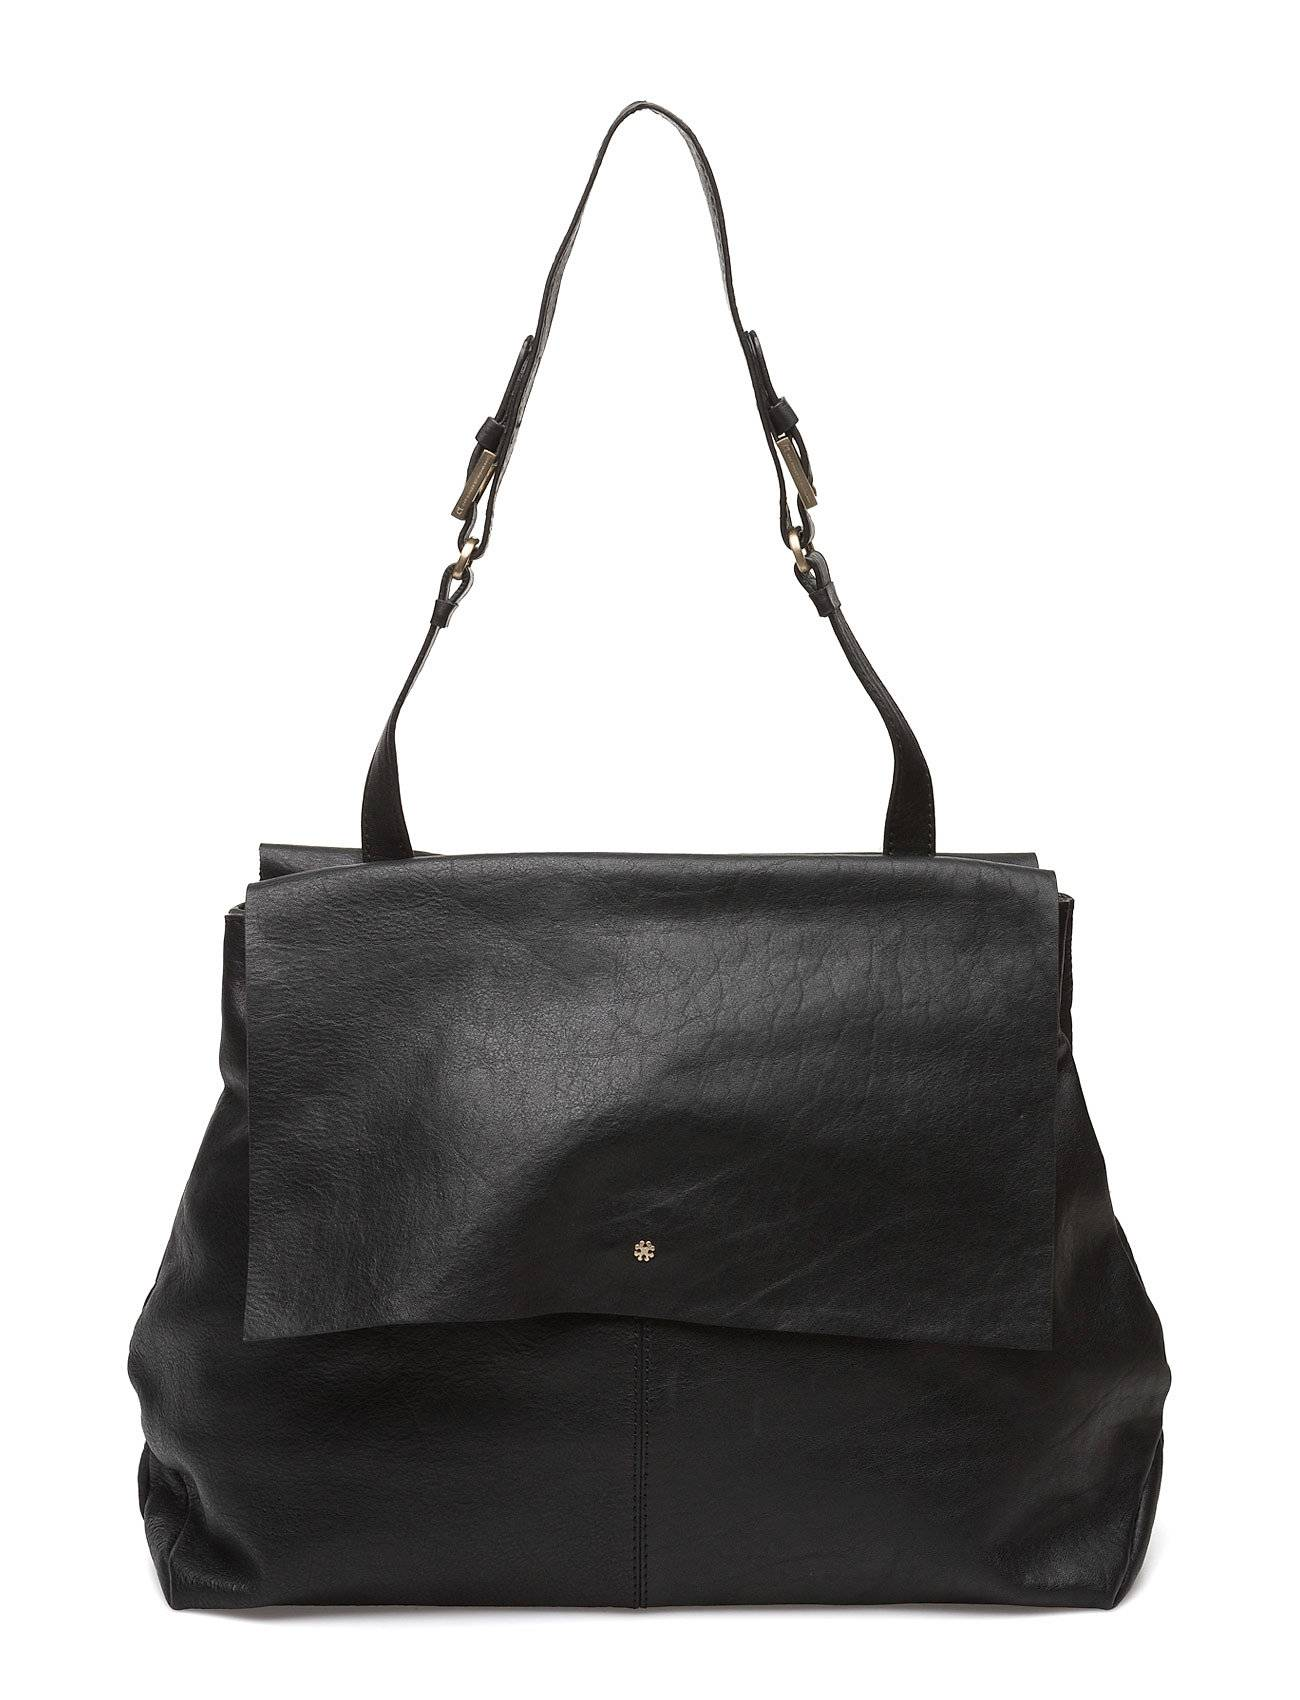 DAY et Day Sorrento Bag